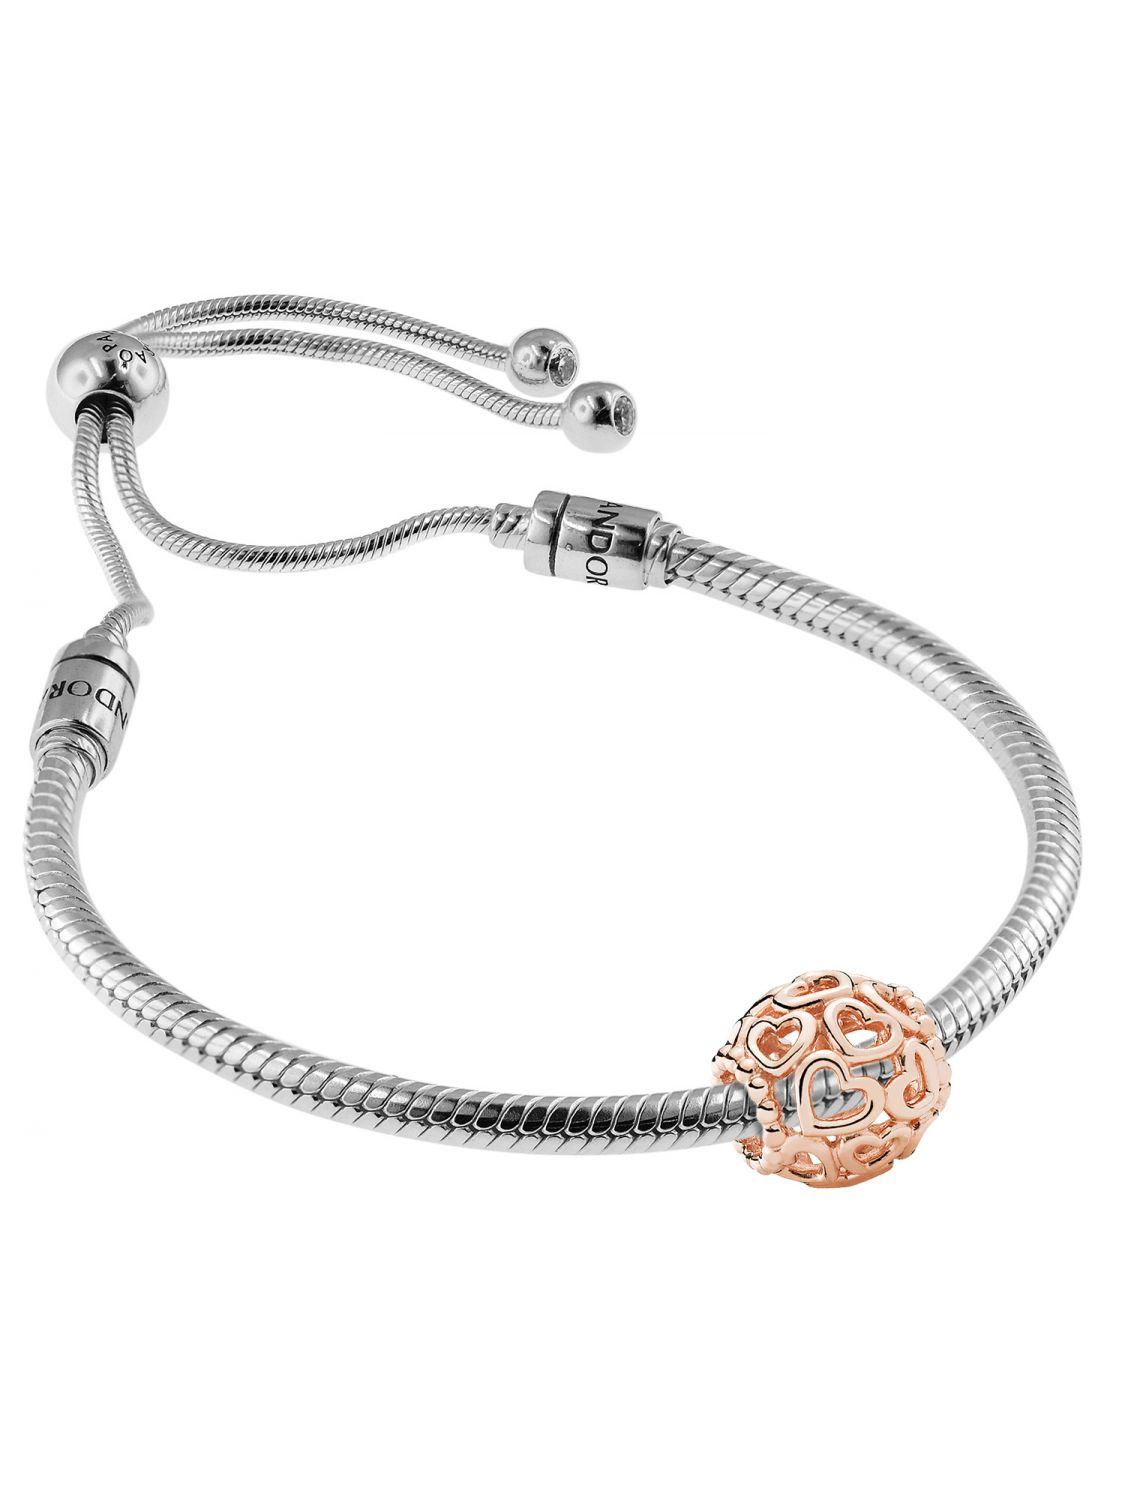 884866a1e Pandora 08665 Bracelet Set Moments Sliding and Charm Open Your Heart Rose  Image 1 ...